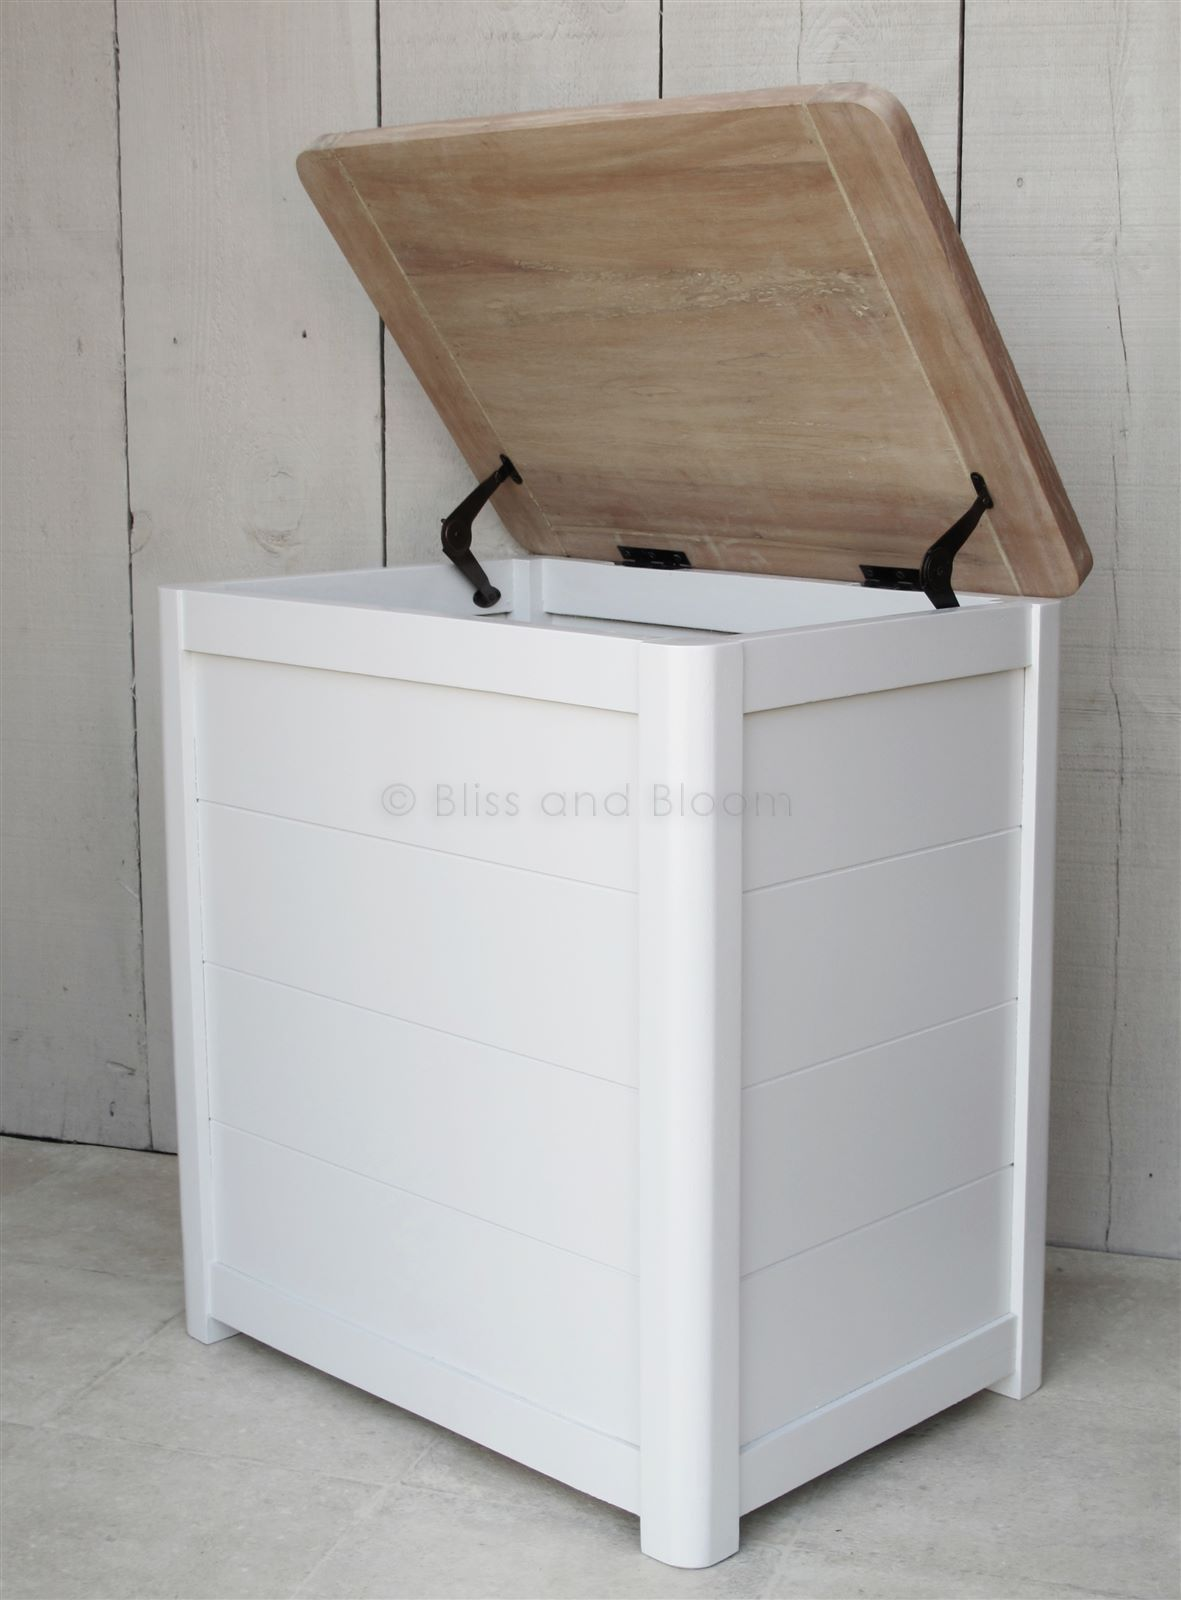 Wooden Laundry Linen Bin Medium Bliss And Bloom Ltd